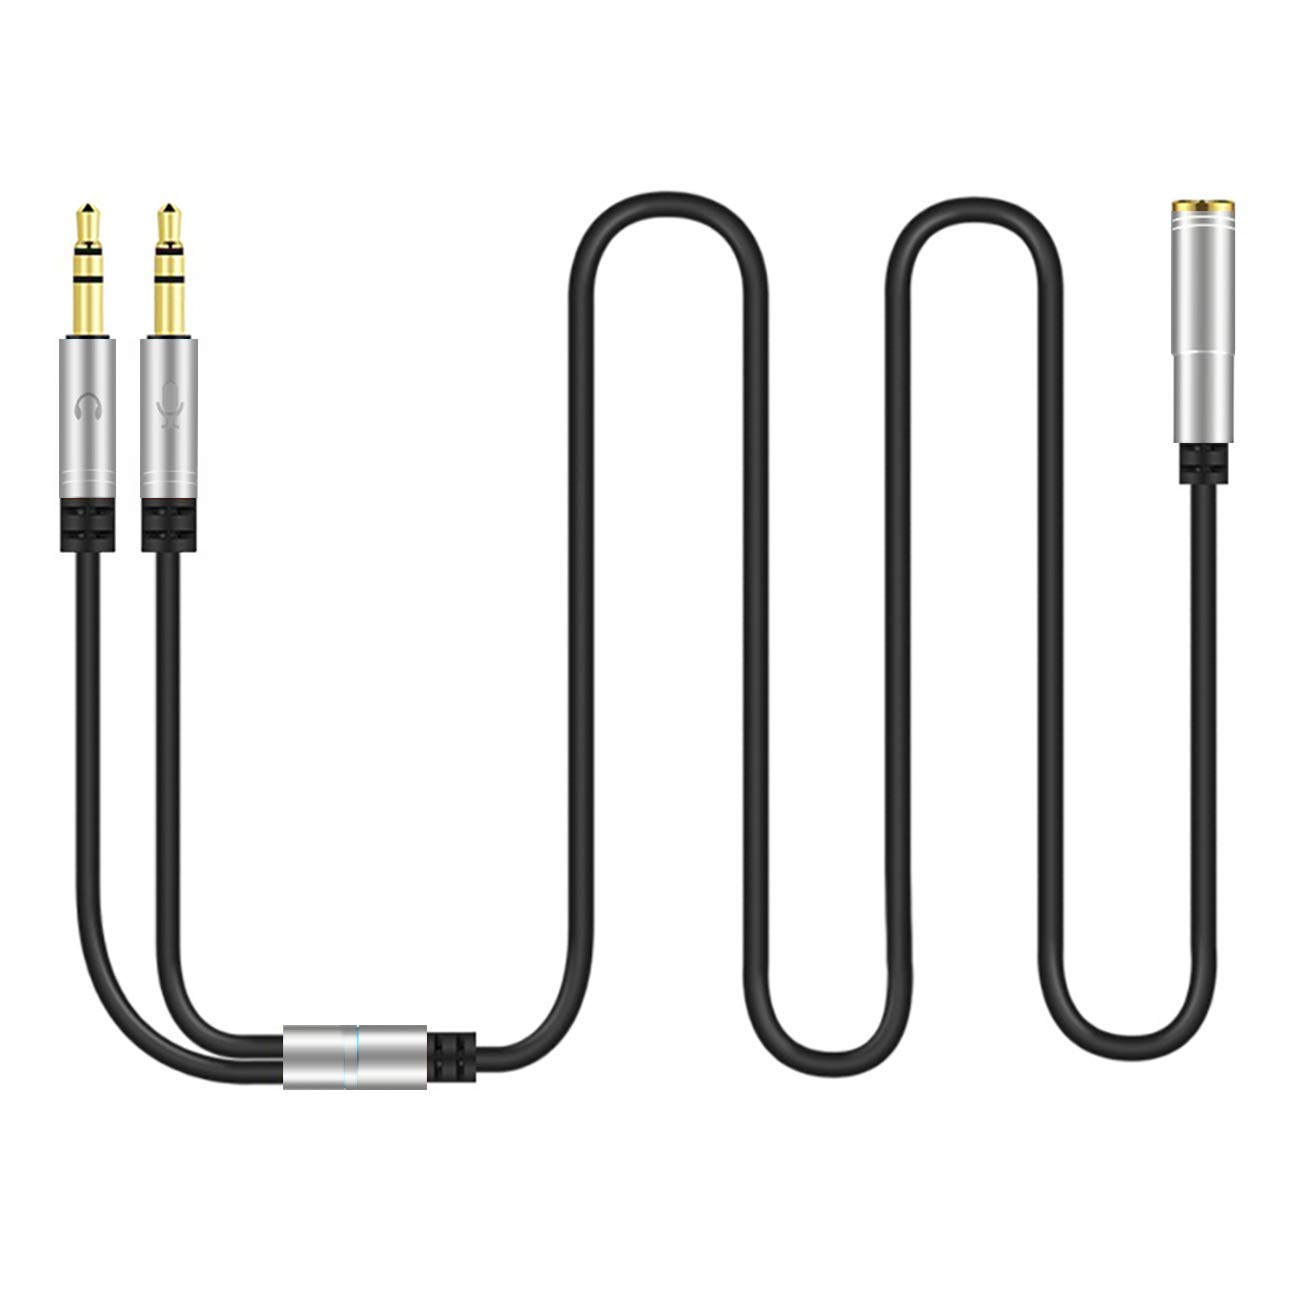 100CM, Silver Canfon Headphone Splitter for Computer 3.5mm Female to 2 Dual 3.5mm Male Headphone Mic Audio Y Splitter Cable Smartphone Headset to PC Adapter